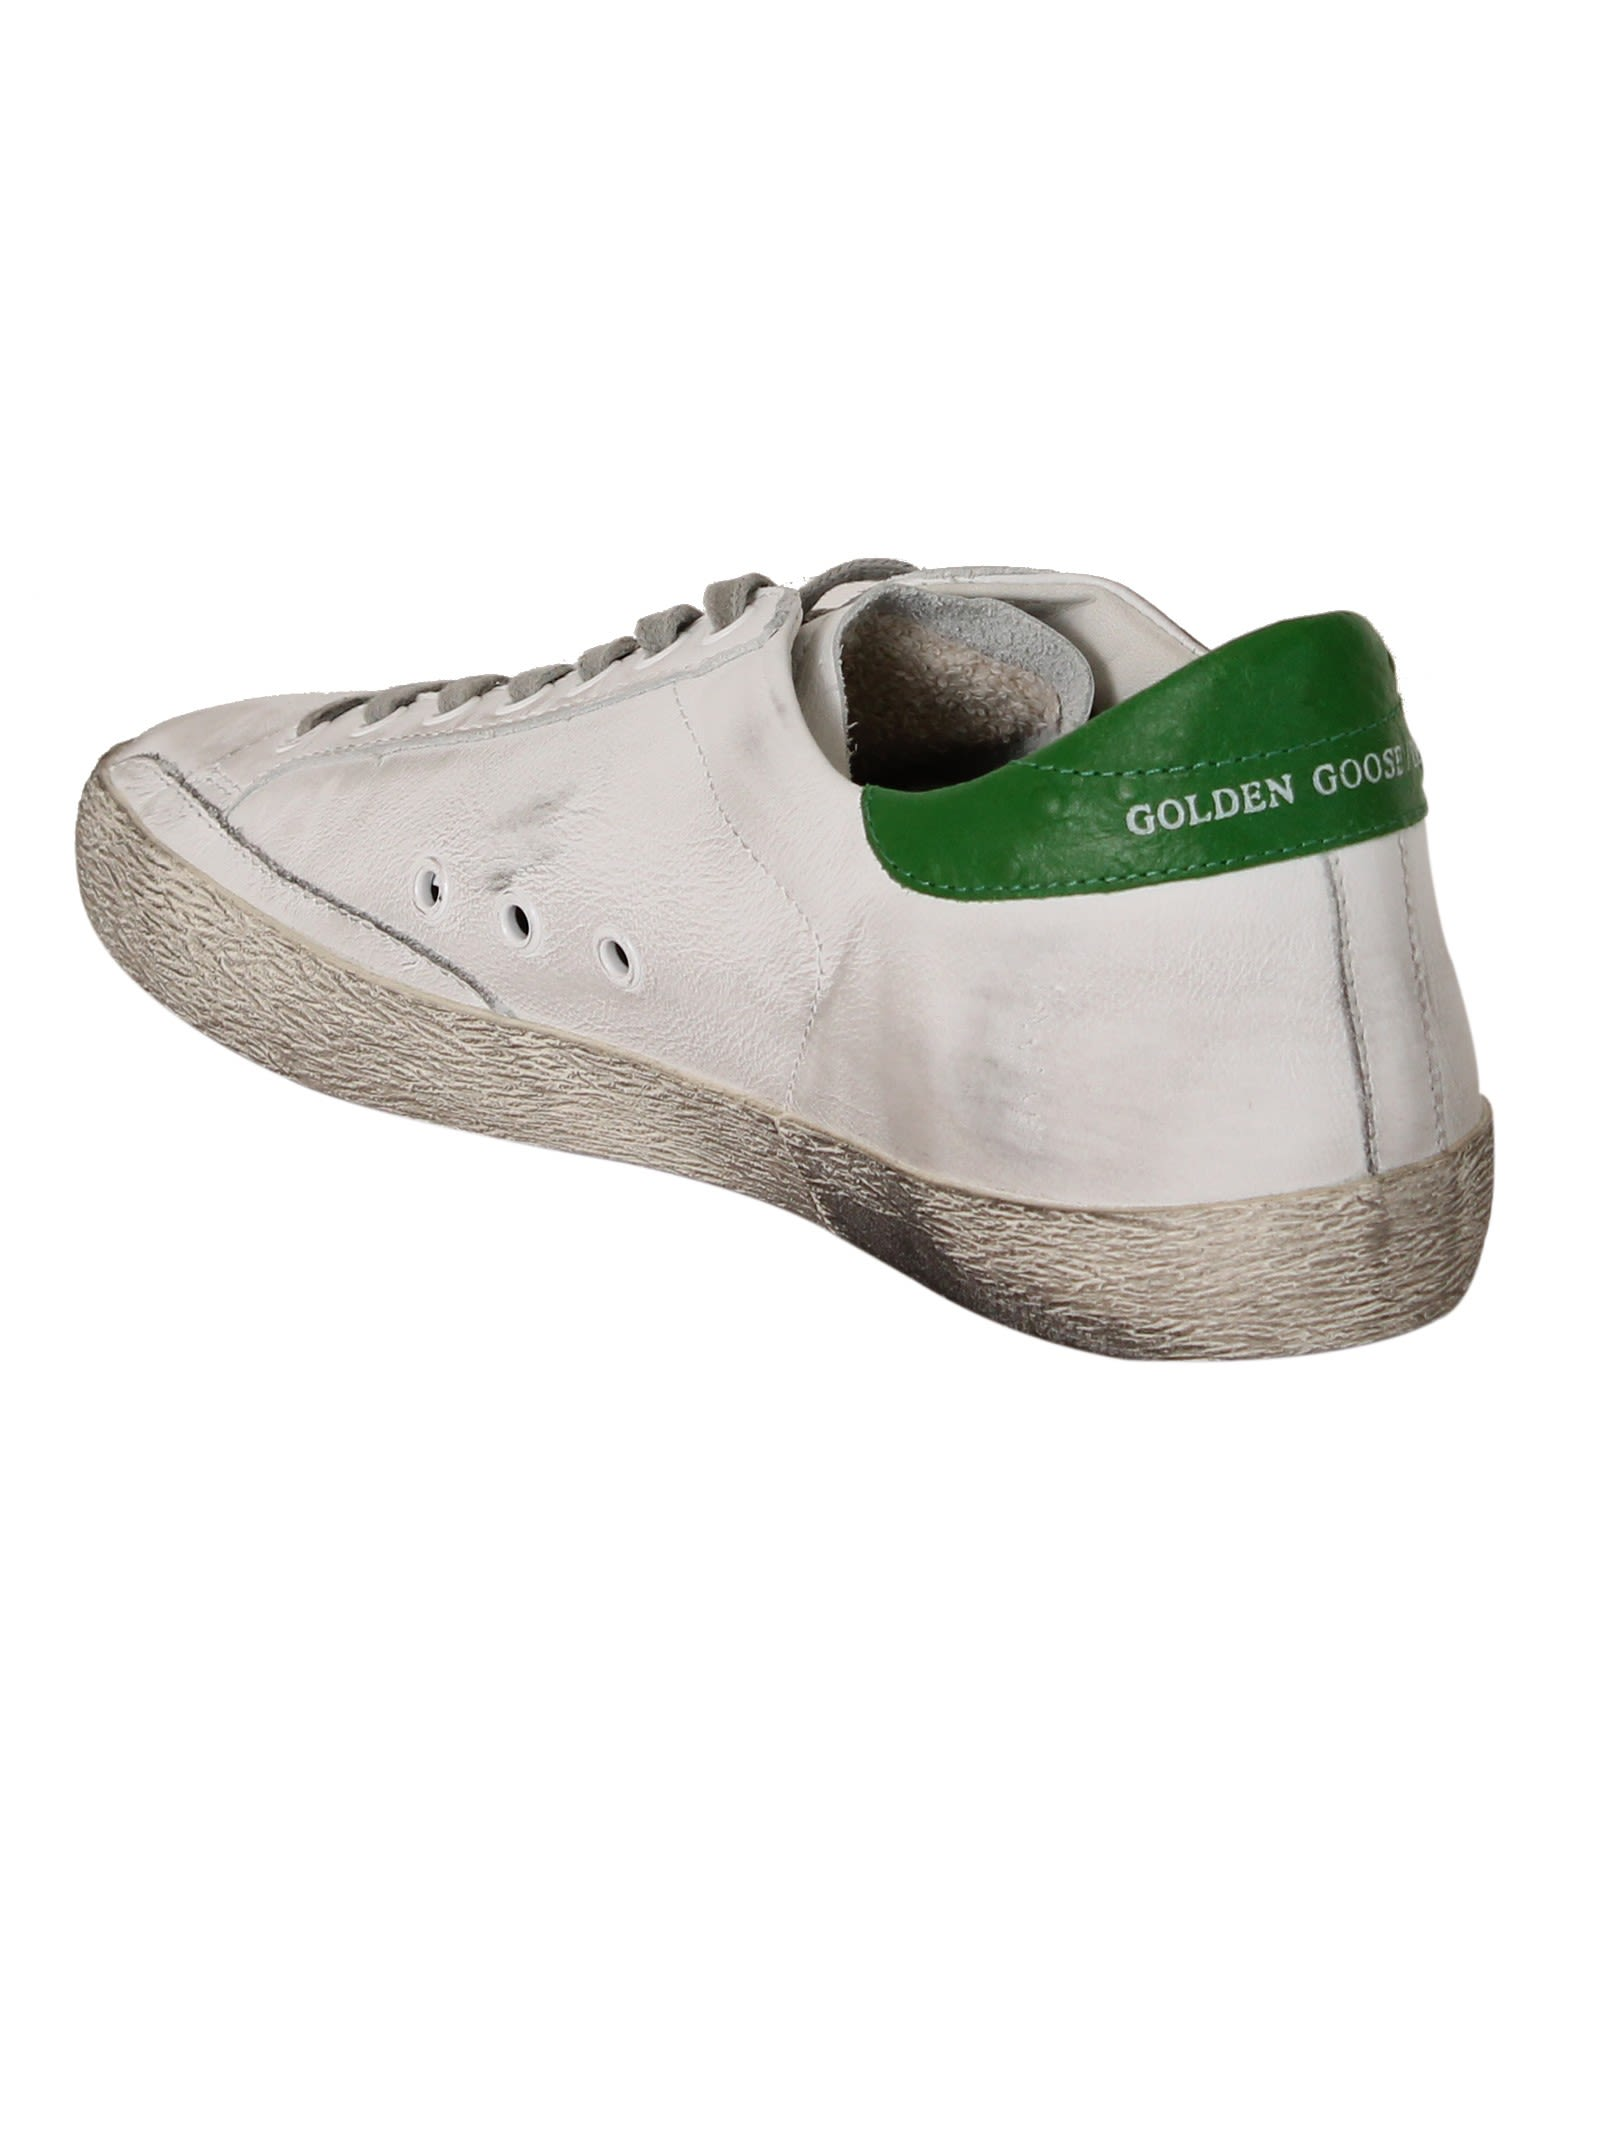 Golden Goose White & Green Superstar Sneaker